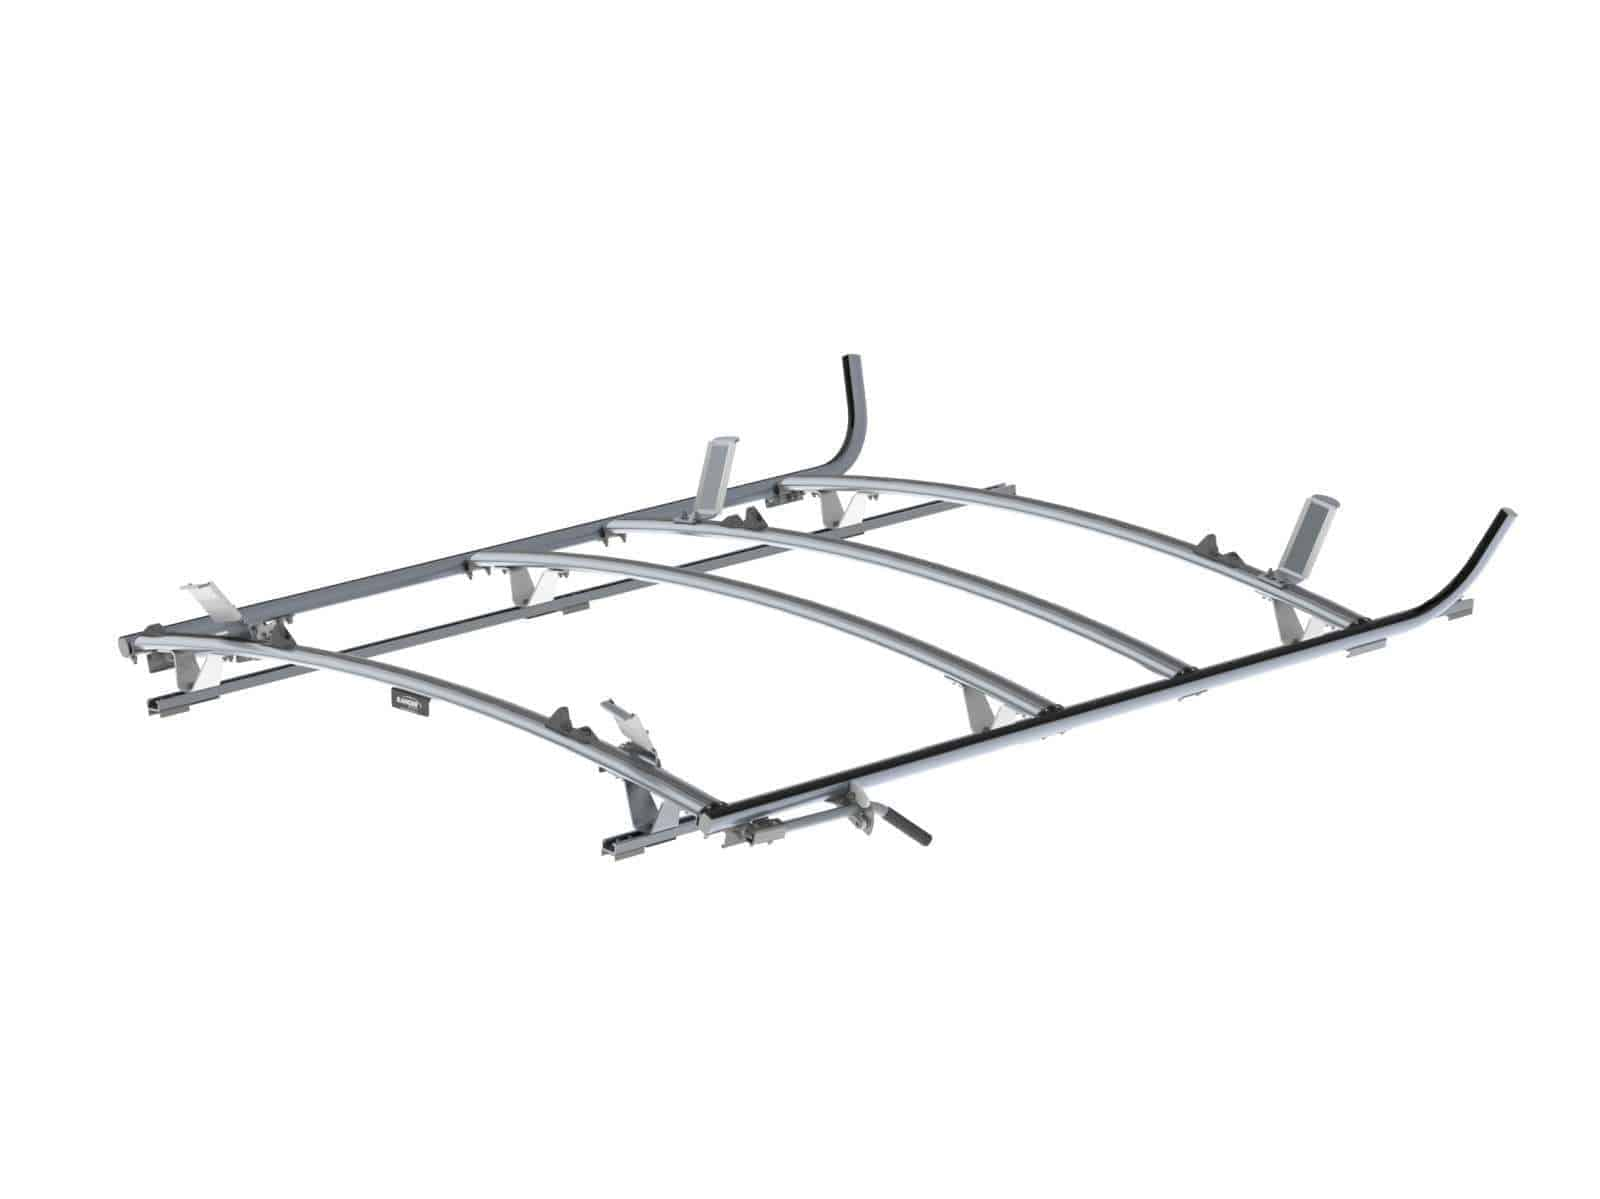 Combination Ram Promaster Ladder Rack 3 Bar System